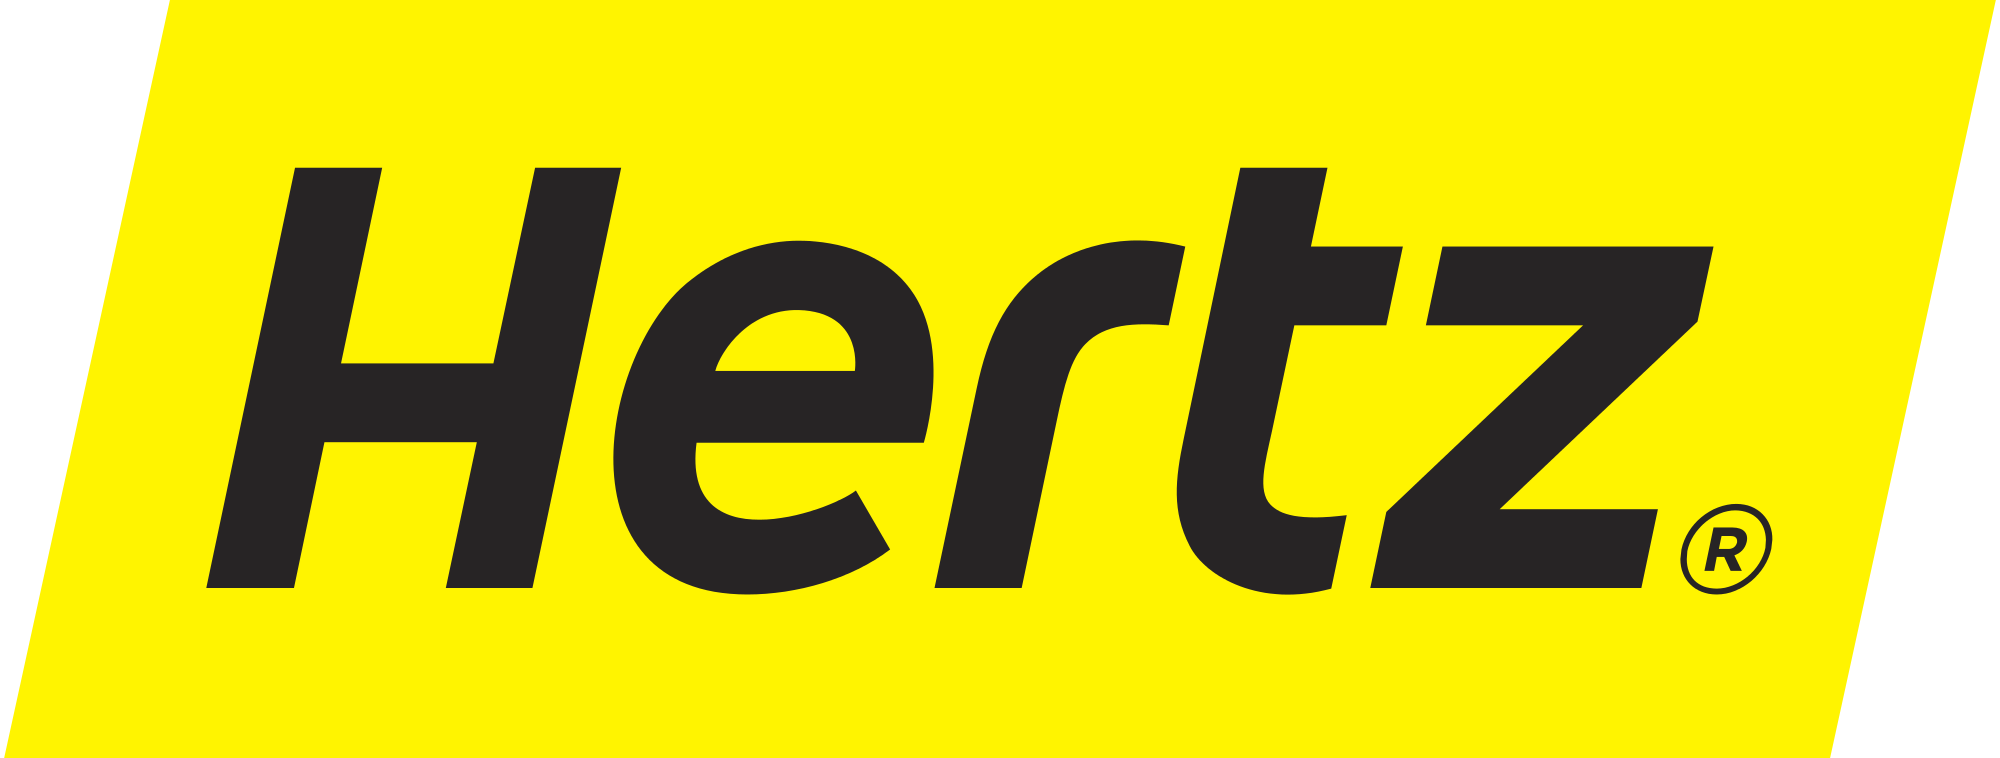 HERTZ! Oct 9 thru Dec 2016 Drive Cars one way to FLORIDA or ATLANTA from $10 a day from East Coast Cities (see post)